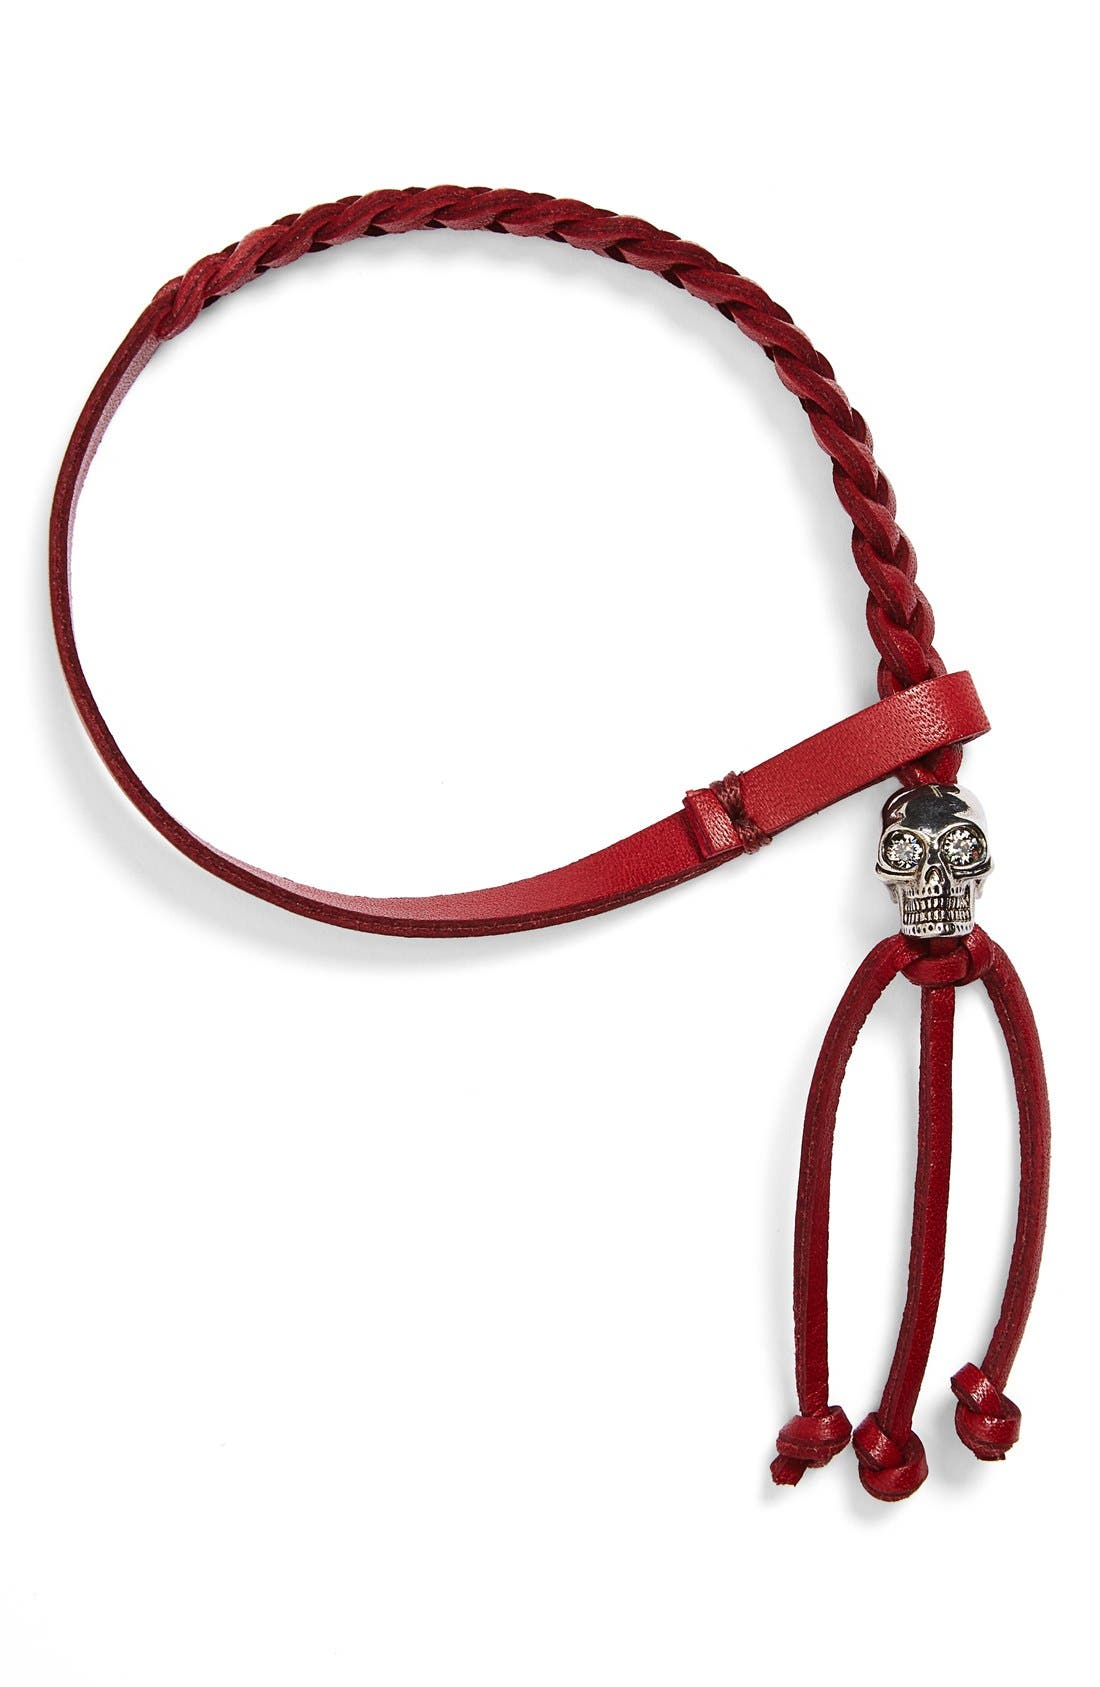 ALEXANDER MCQUEEN,                             Skull Braided Leather Bracelet,                             Main thumbnail 1, color,                             600